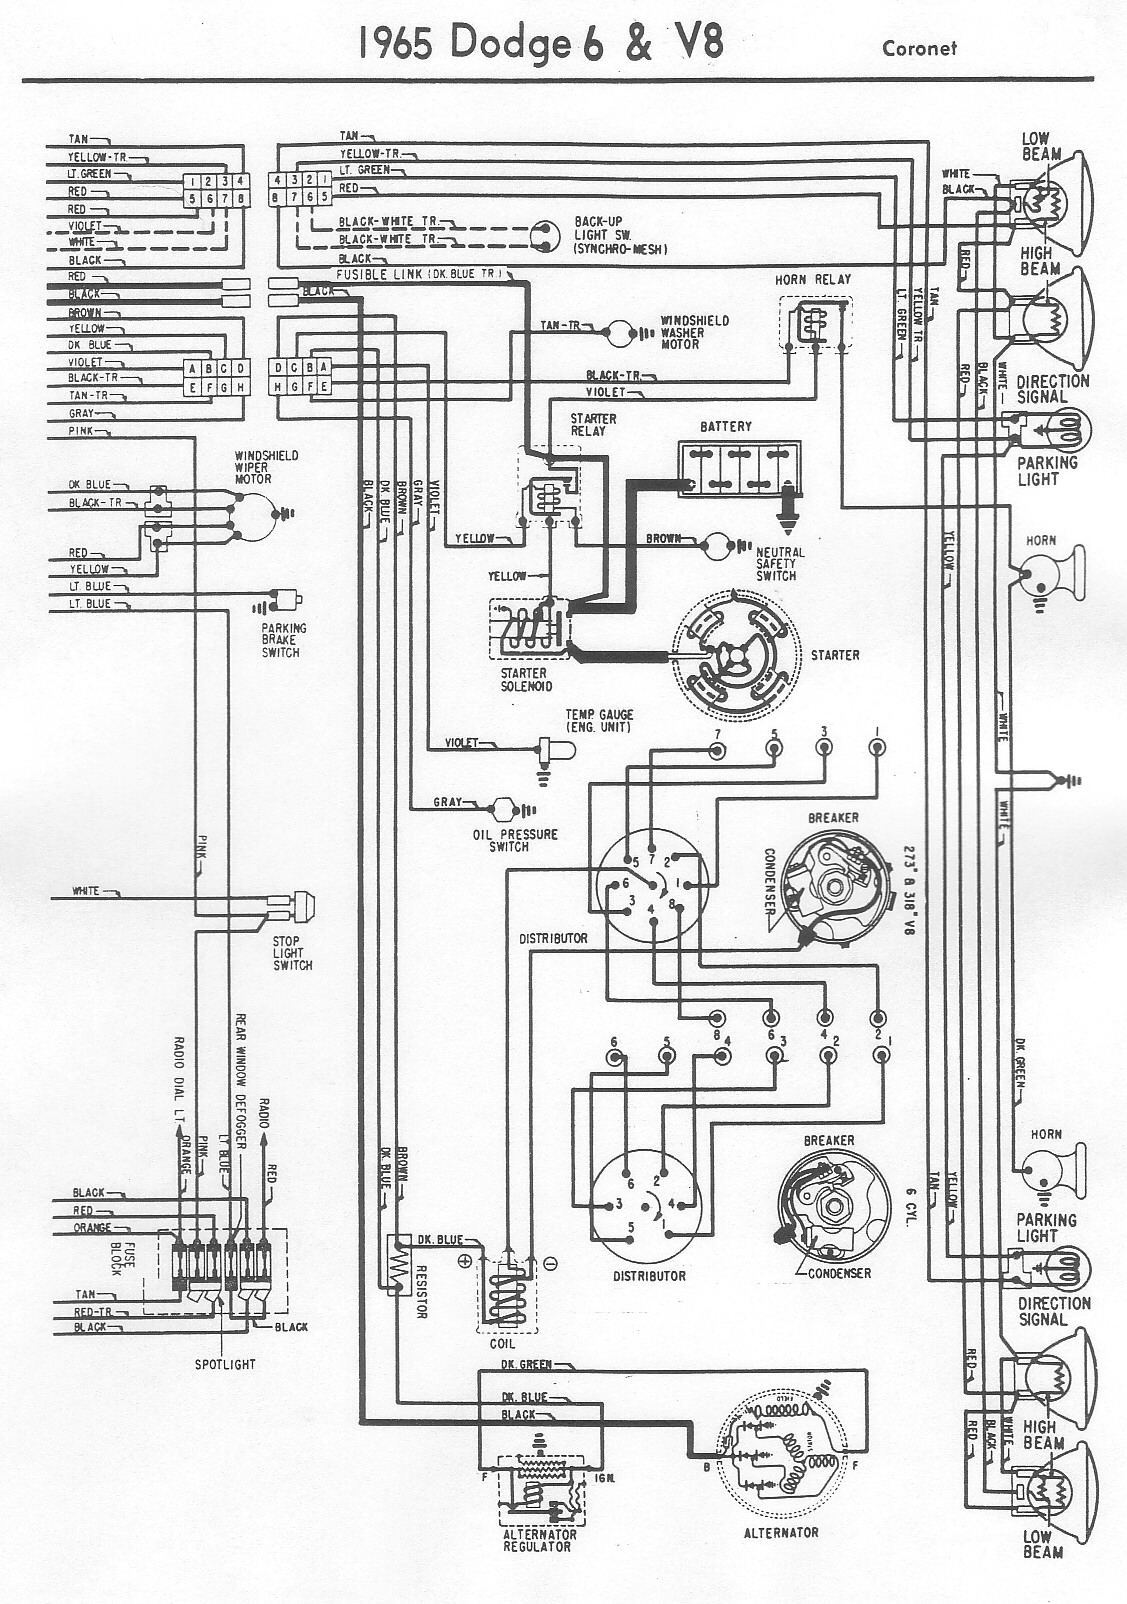 medium resolution of wiring diagram for 1966 dodge coronet wiring diagram todays dodge wiring diagram wires 1964 dodge coronet